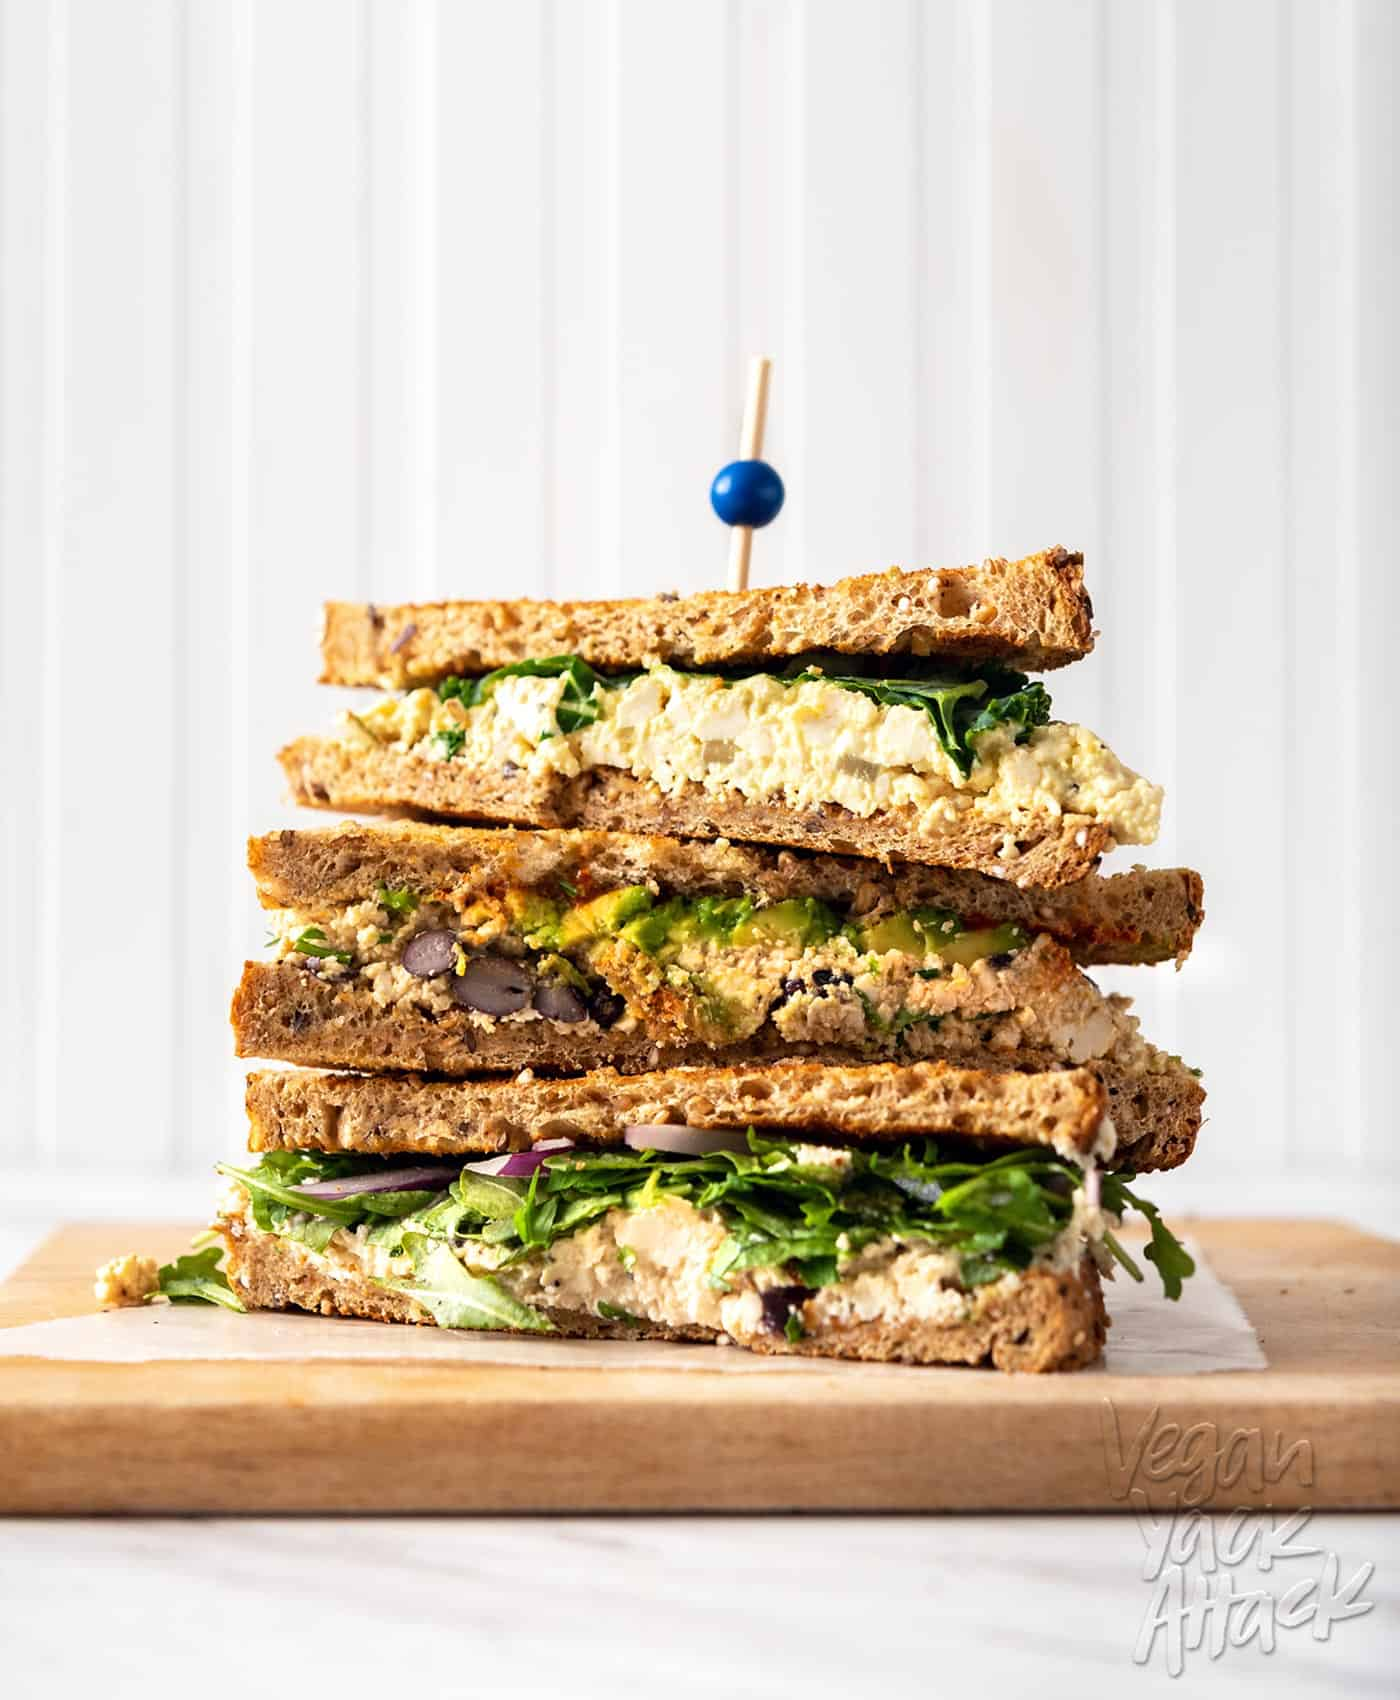 Three tofu egg salad sandwiches stacked on top of one another, on top of a wood board, against a white background